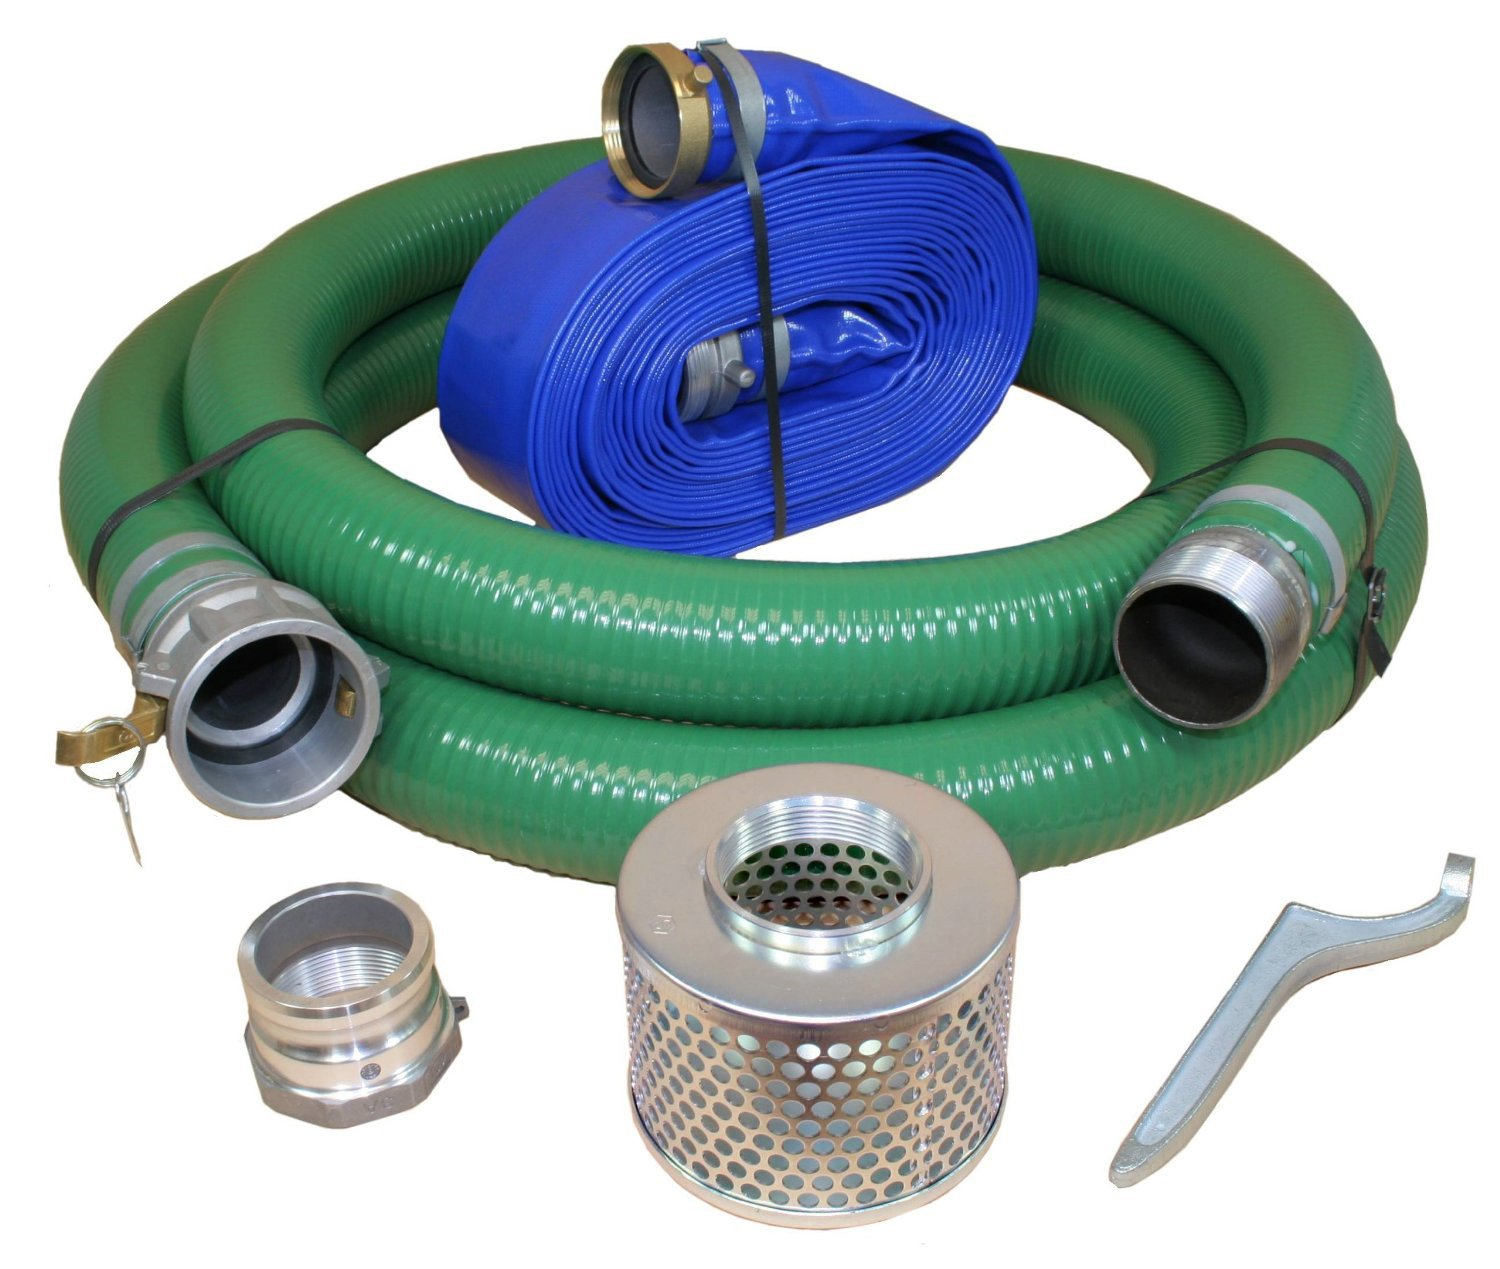 JGB Enterprises Eagle Hose PVC/Aluminum Water/Trash Pump Hose Kit, 3'' Green Suction Hose Coupled C x KCN, 3'' Blue Discharge Hose Coupled M x F WS, 29 Vacuum Rating, 70 PSI Maximum Temperature, 50' Length, 3 ID